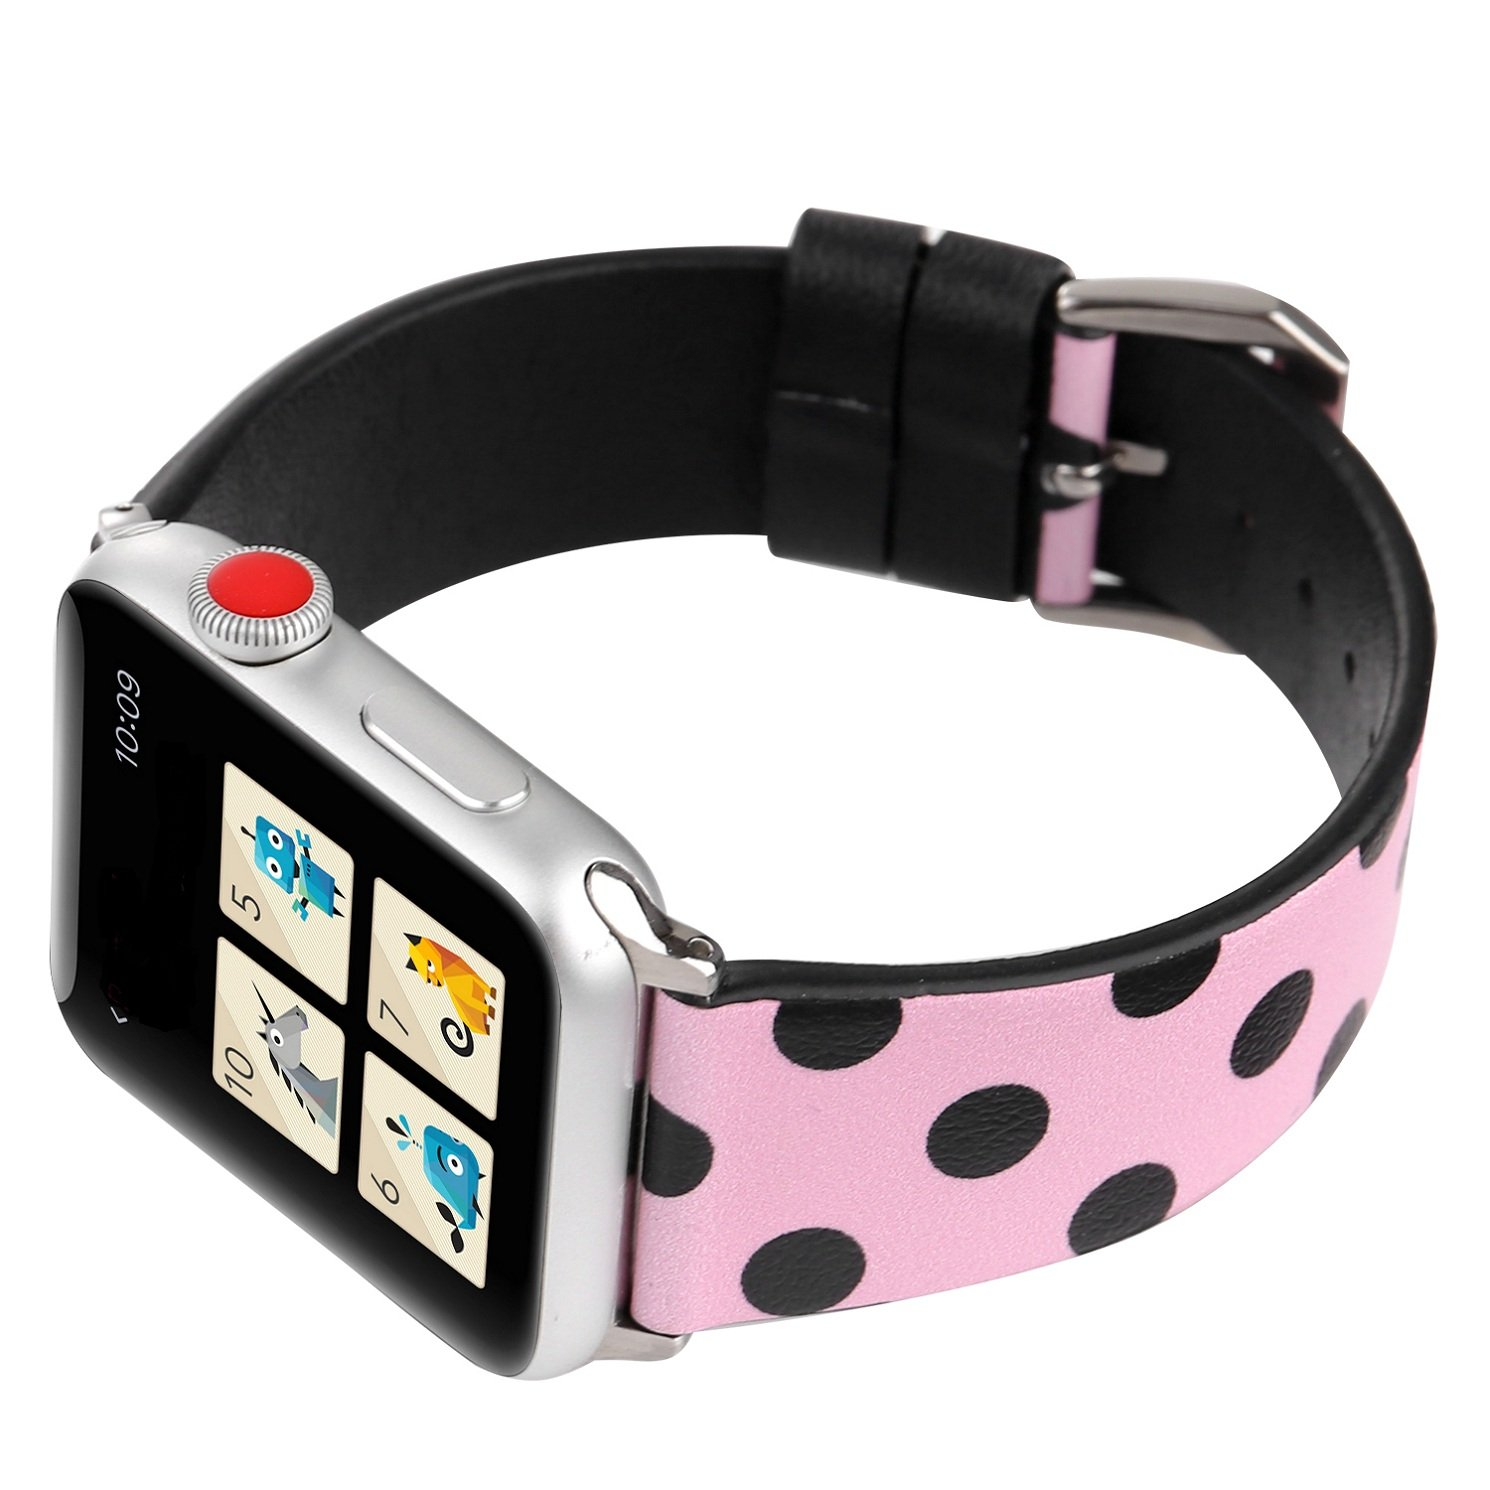 Juzzhou Band For Apple Watch iWatch Series 3/2/1 Sport Edition Leather Replacement Bracelet Wristband Wriststrap Watchband Wrist Strap With Metal Adapter Adjustable Buckle For Woman Girl Pink 38mm by Juzzhou (Image #3)